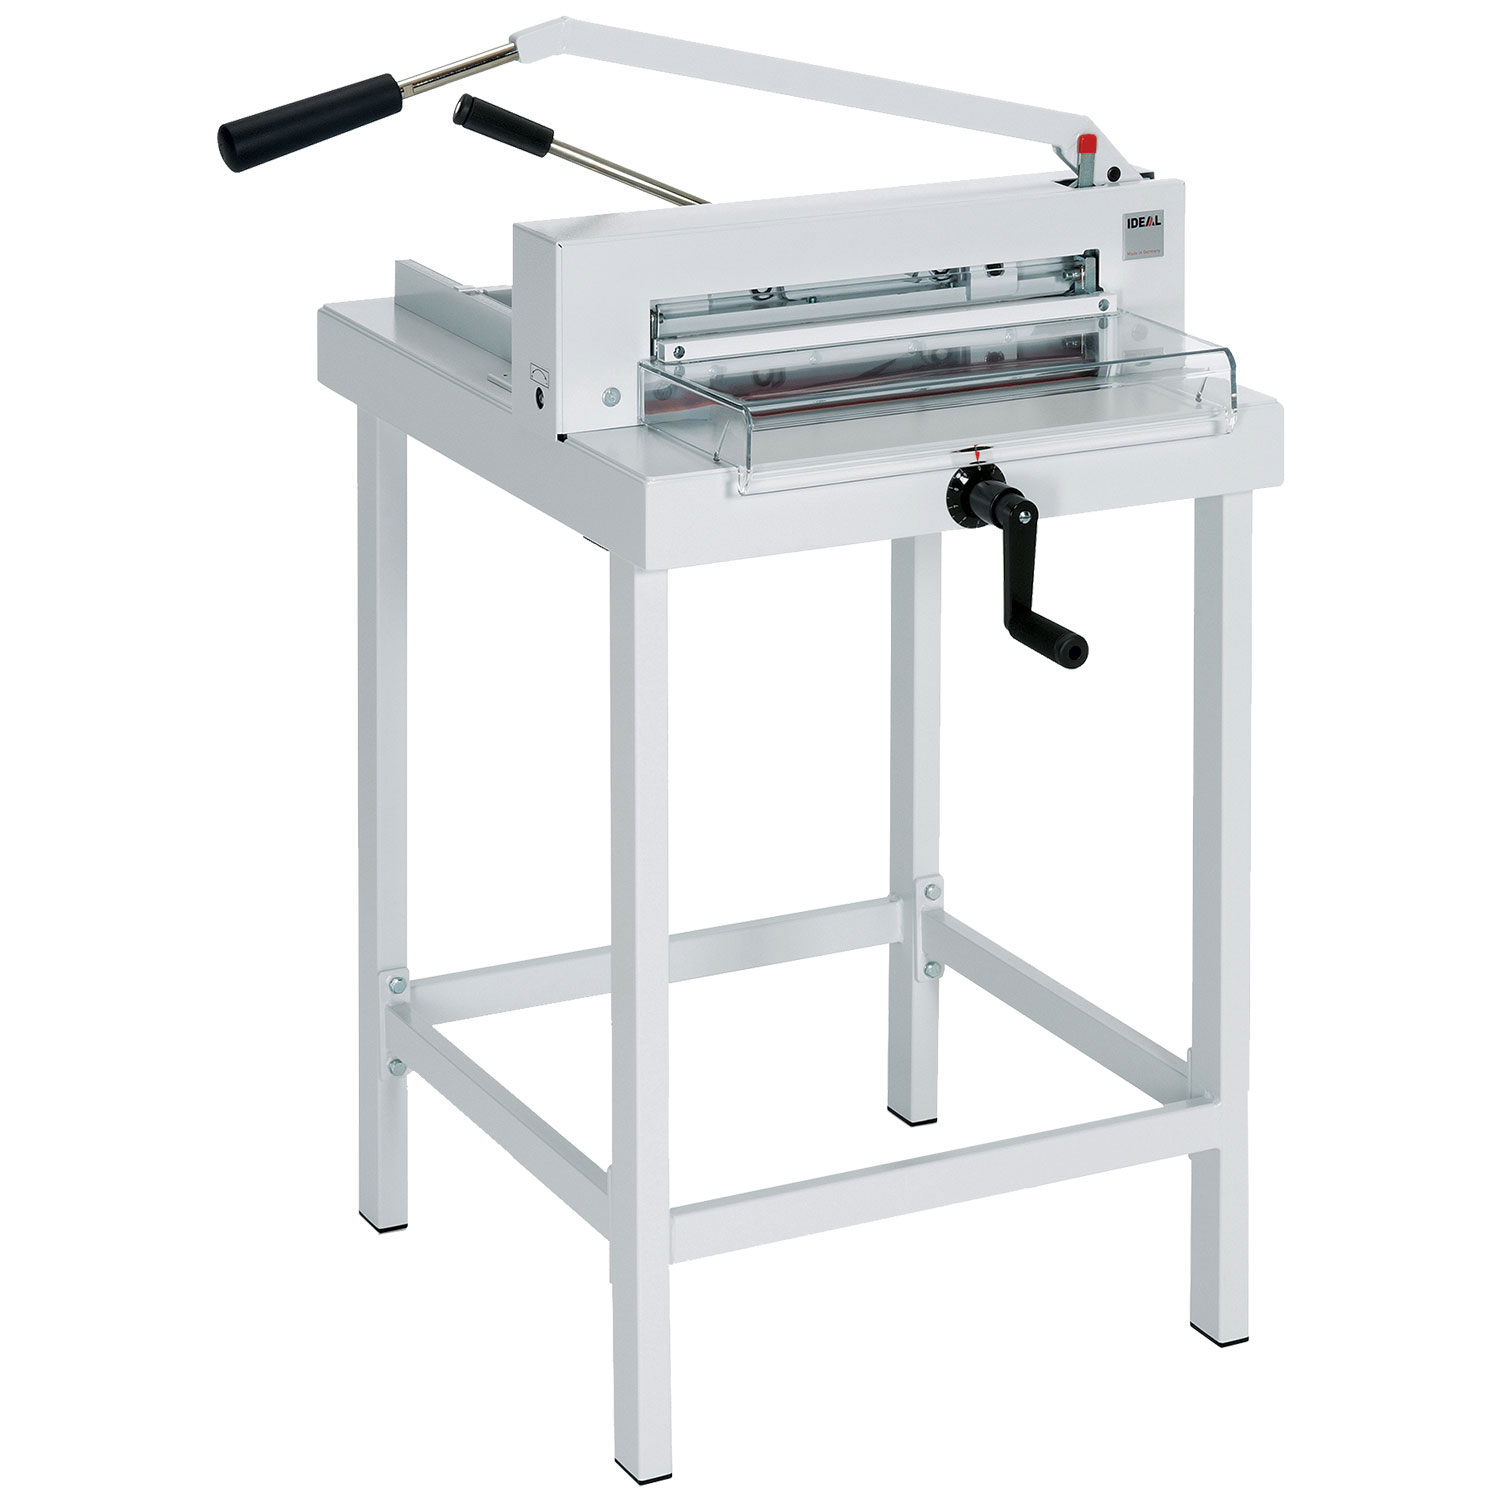 IDEAL 4305 SRA3 Manual Office Guillotine